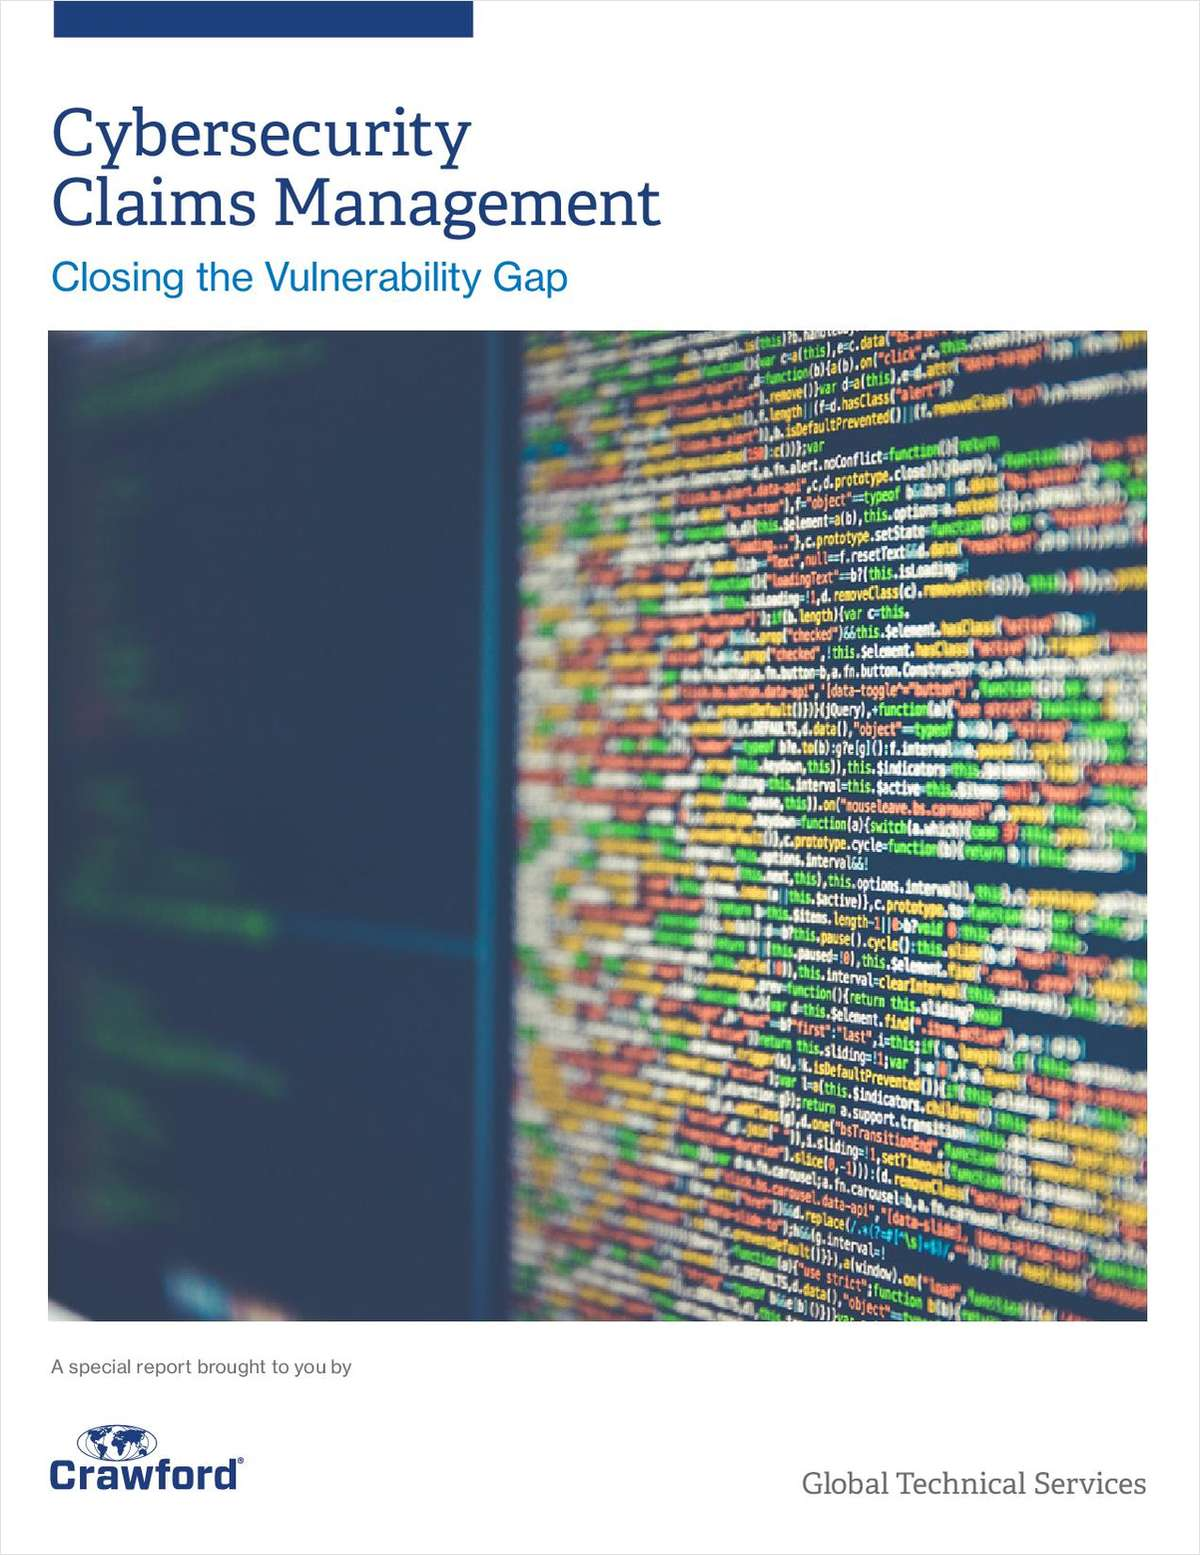 Cybersecurity Claims Management: Closing the Vulnerability Gap